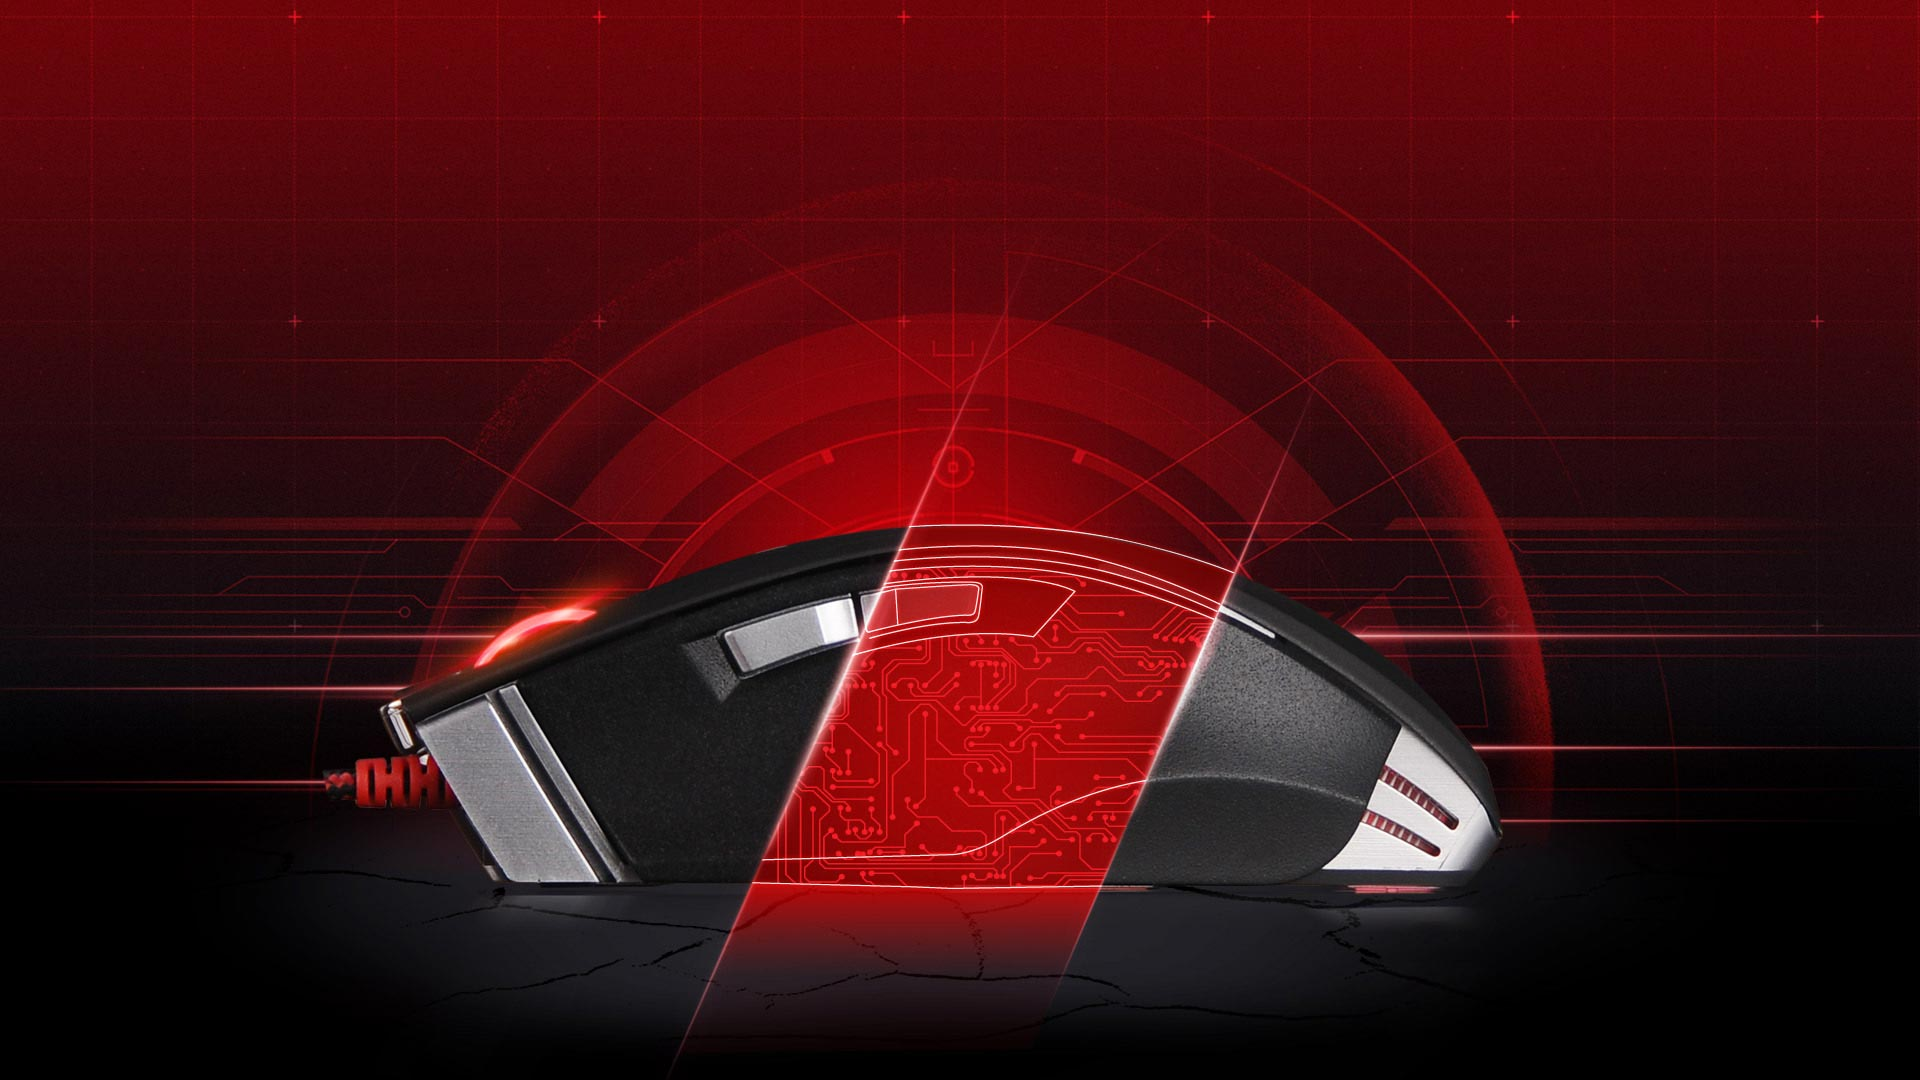 ML160-COMMANDER LASER GAMING MOUSE-Bloody Official Website